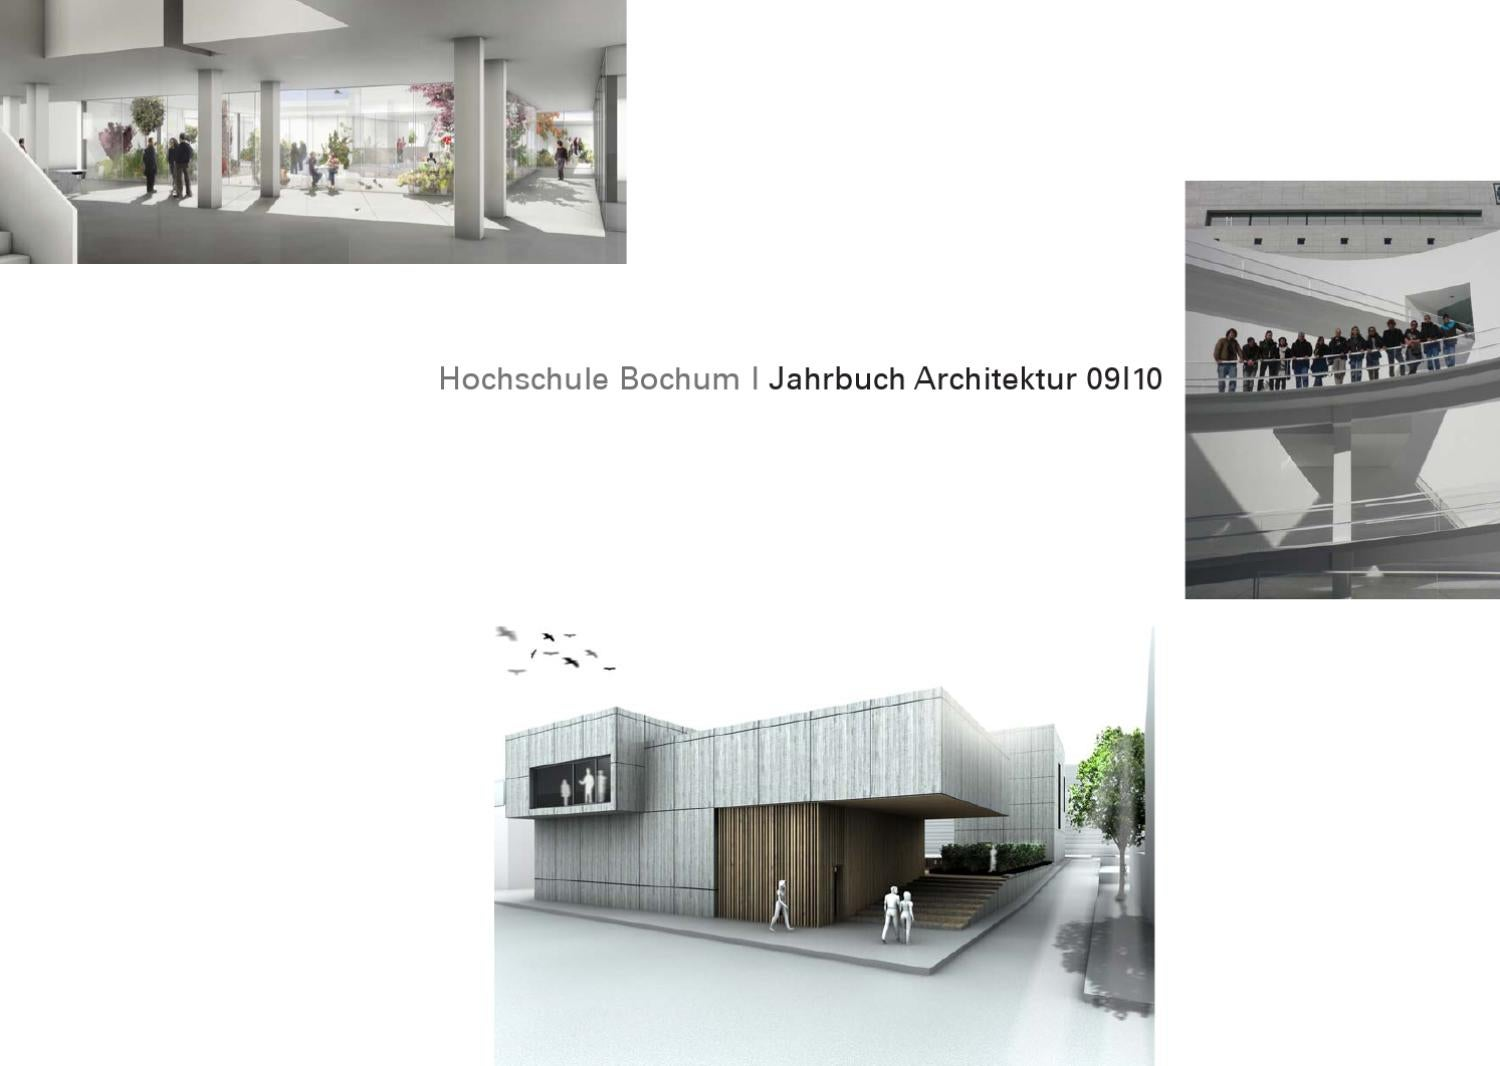 Jahrbuch Architektur HS Bochum 2010 by harald gatermann - issuu